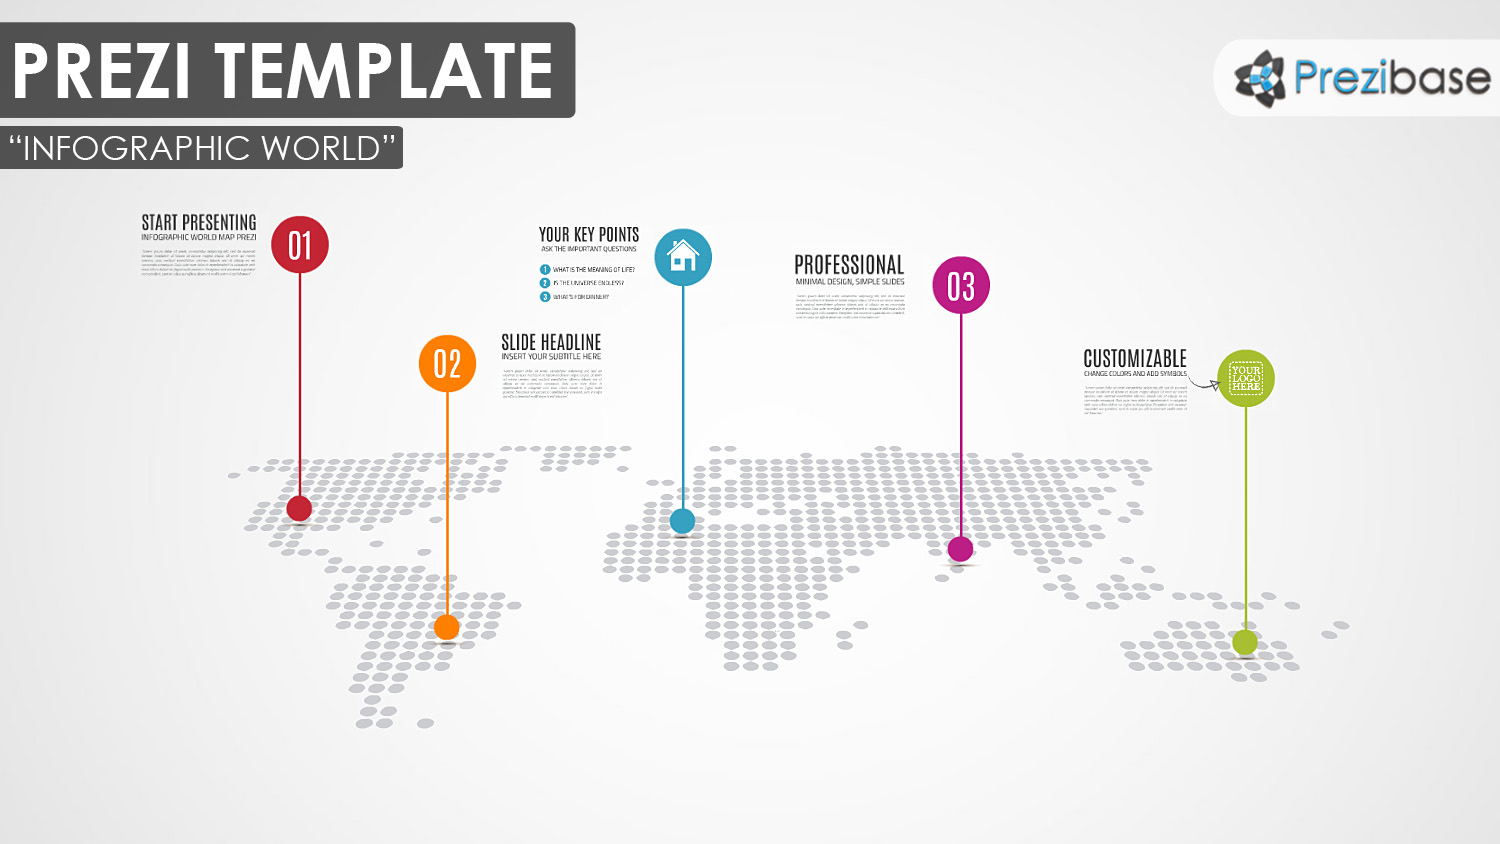 World map prezi templates prezibase customizable tablet computer layout zoom prezi template for presentations gumiabroncs